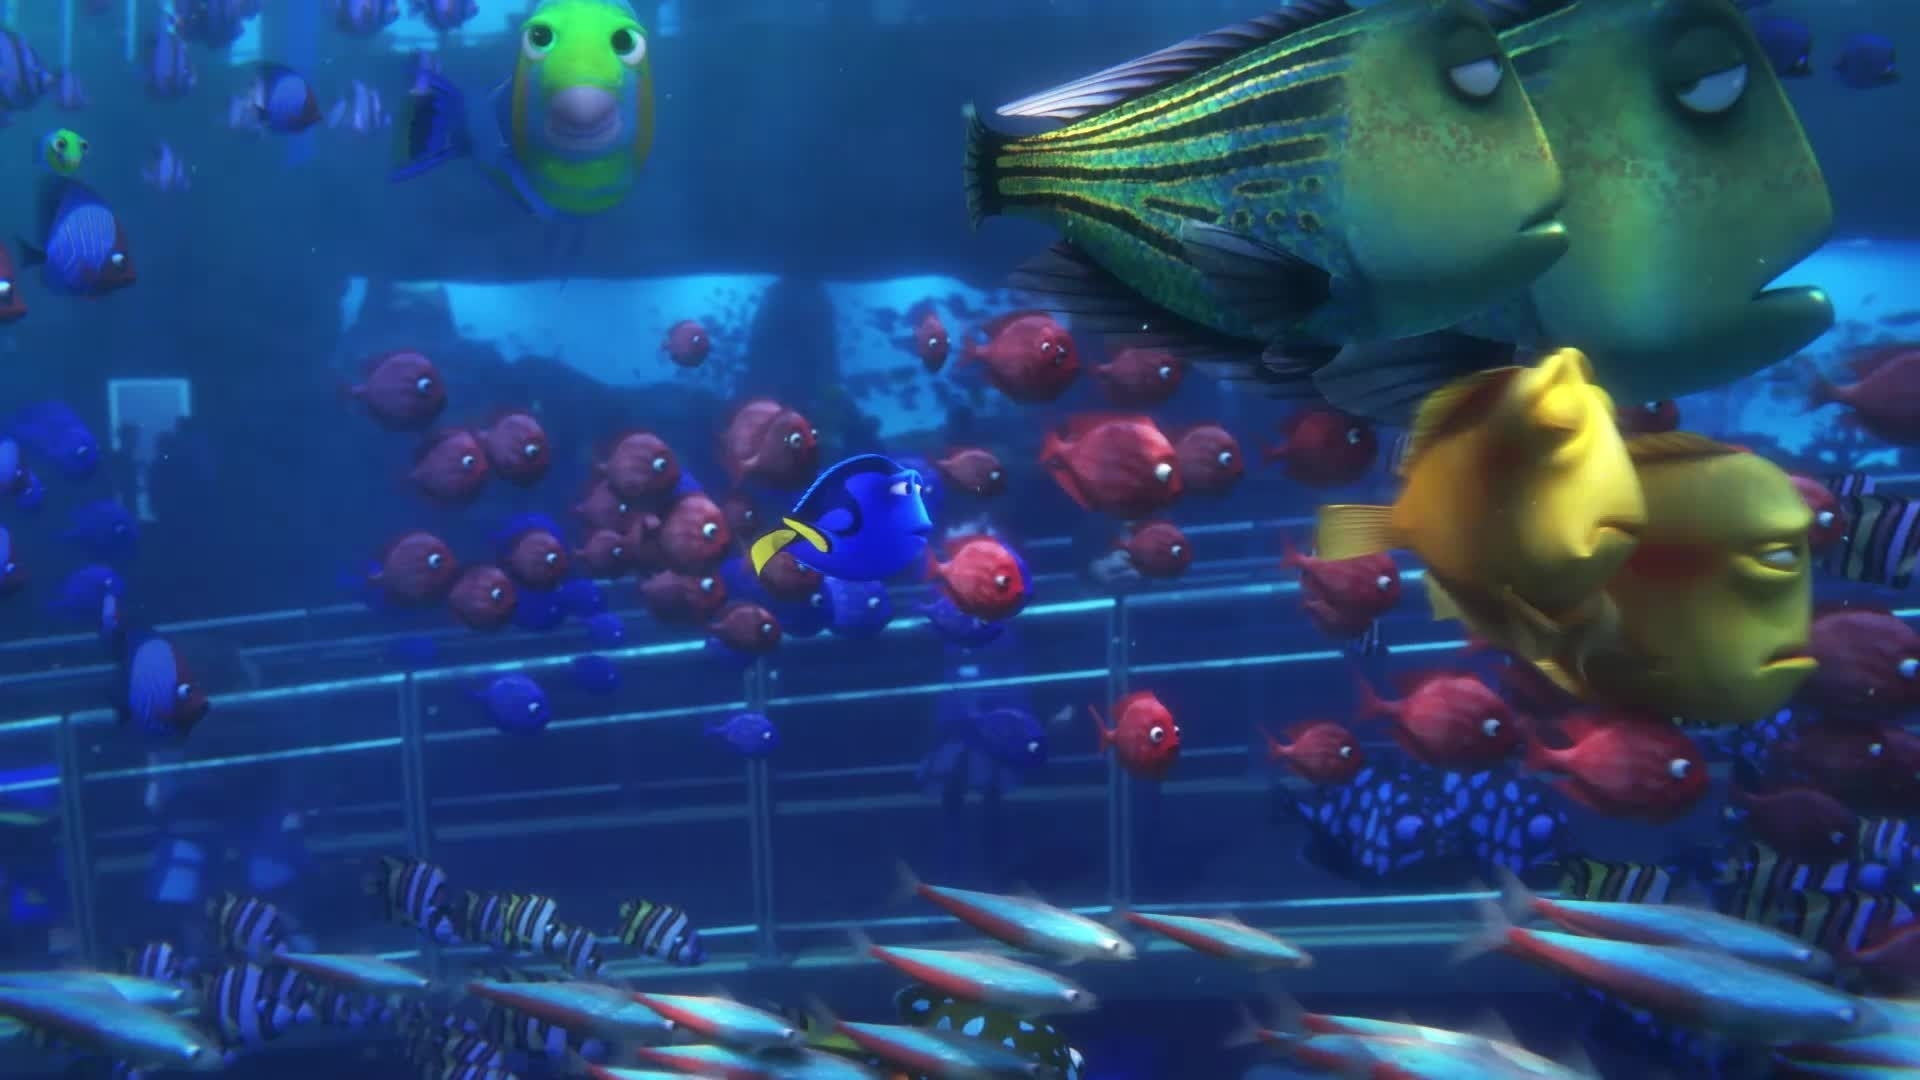 Finding Dory - Going Home